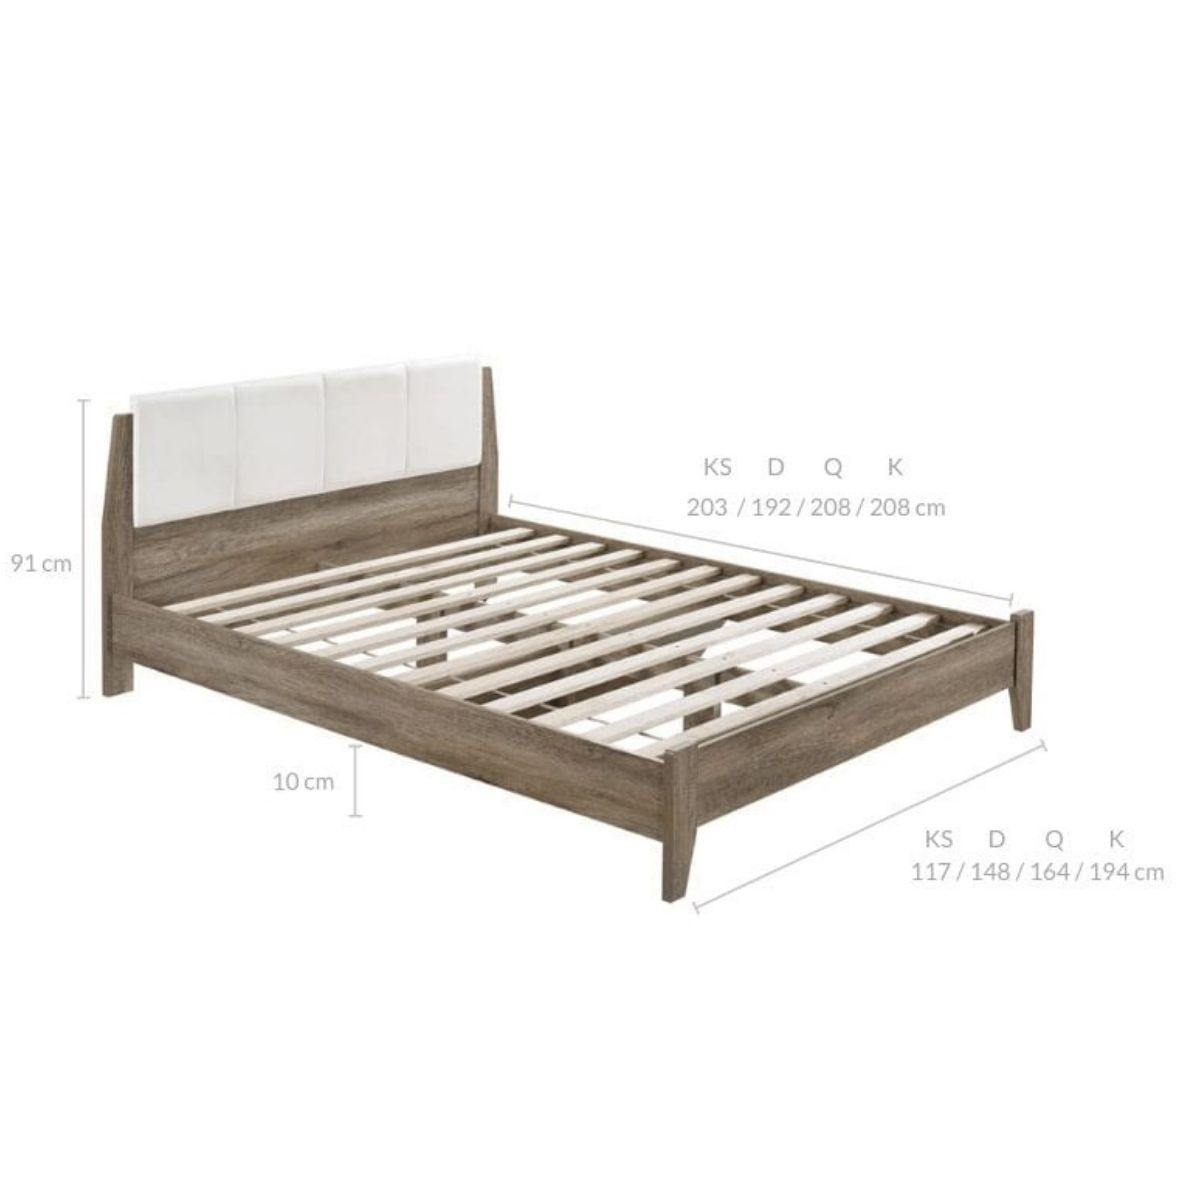 Scandi Wooden Bed Frame with Leather Upholstered Bed Head King - Evopia